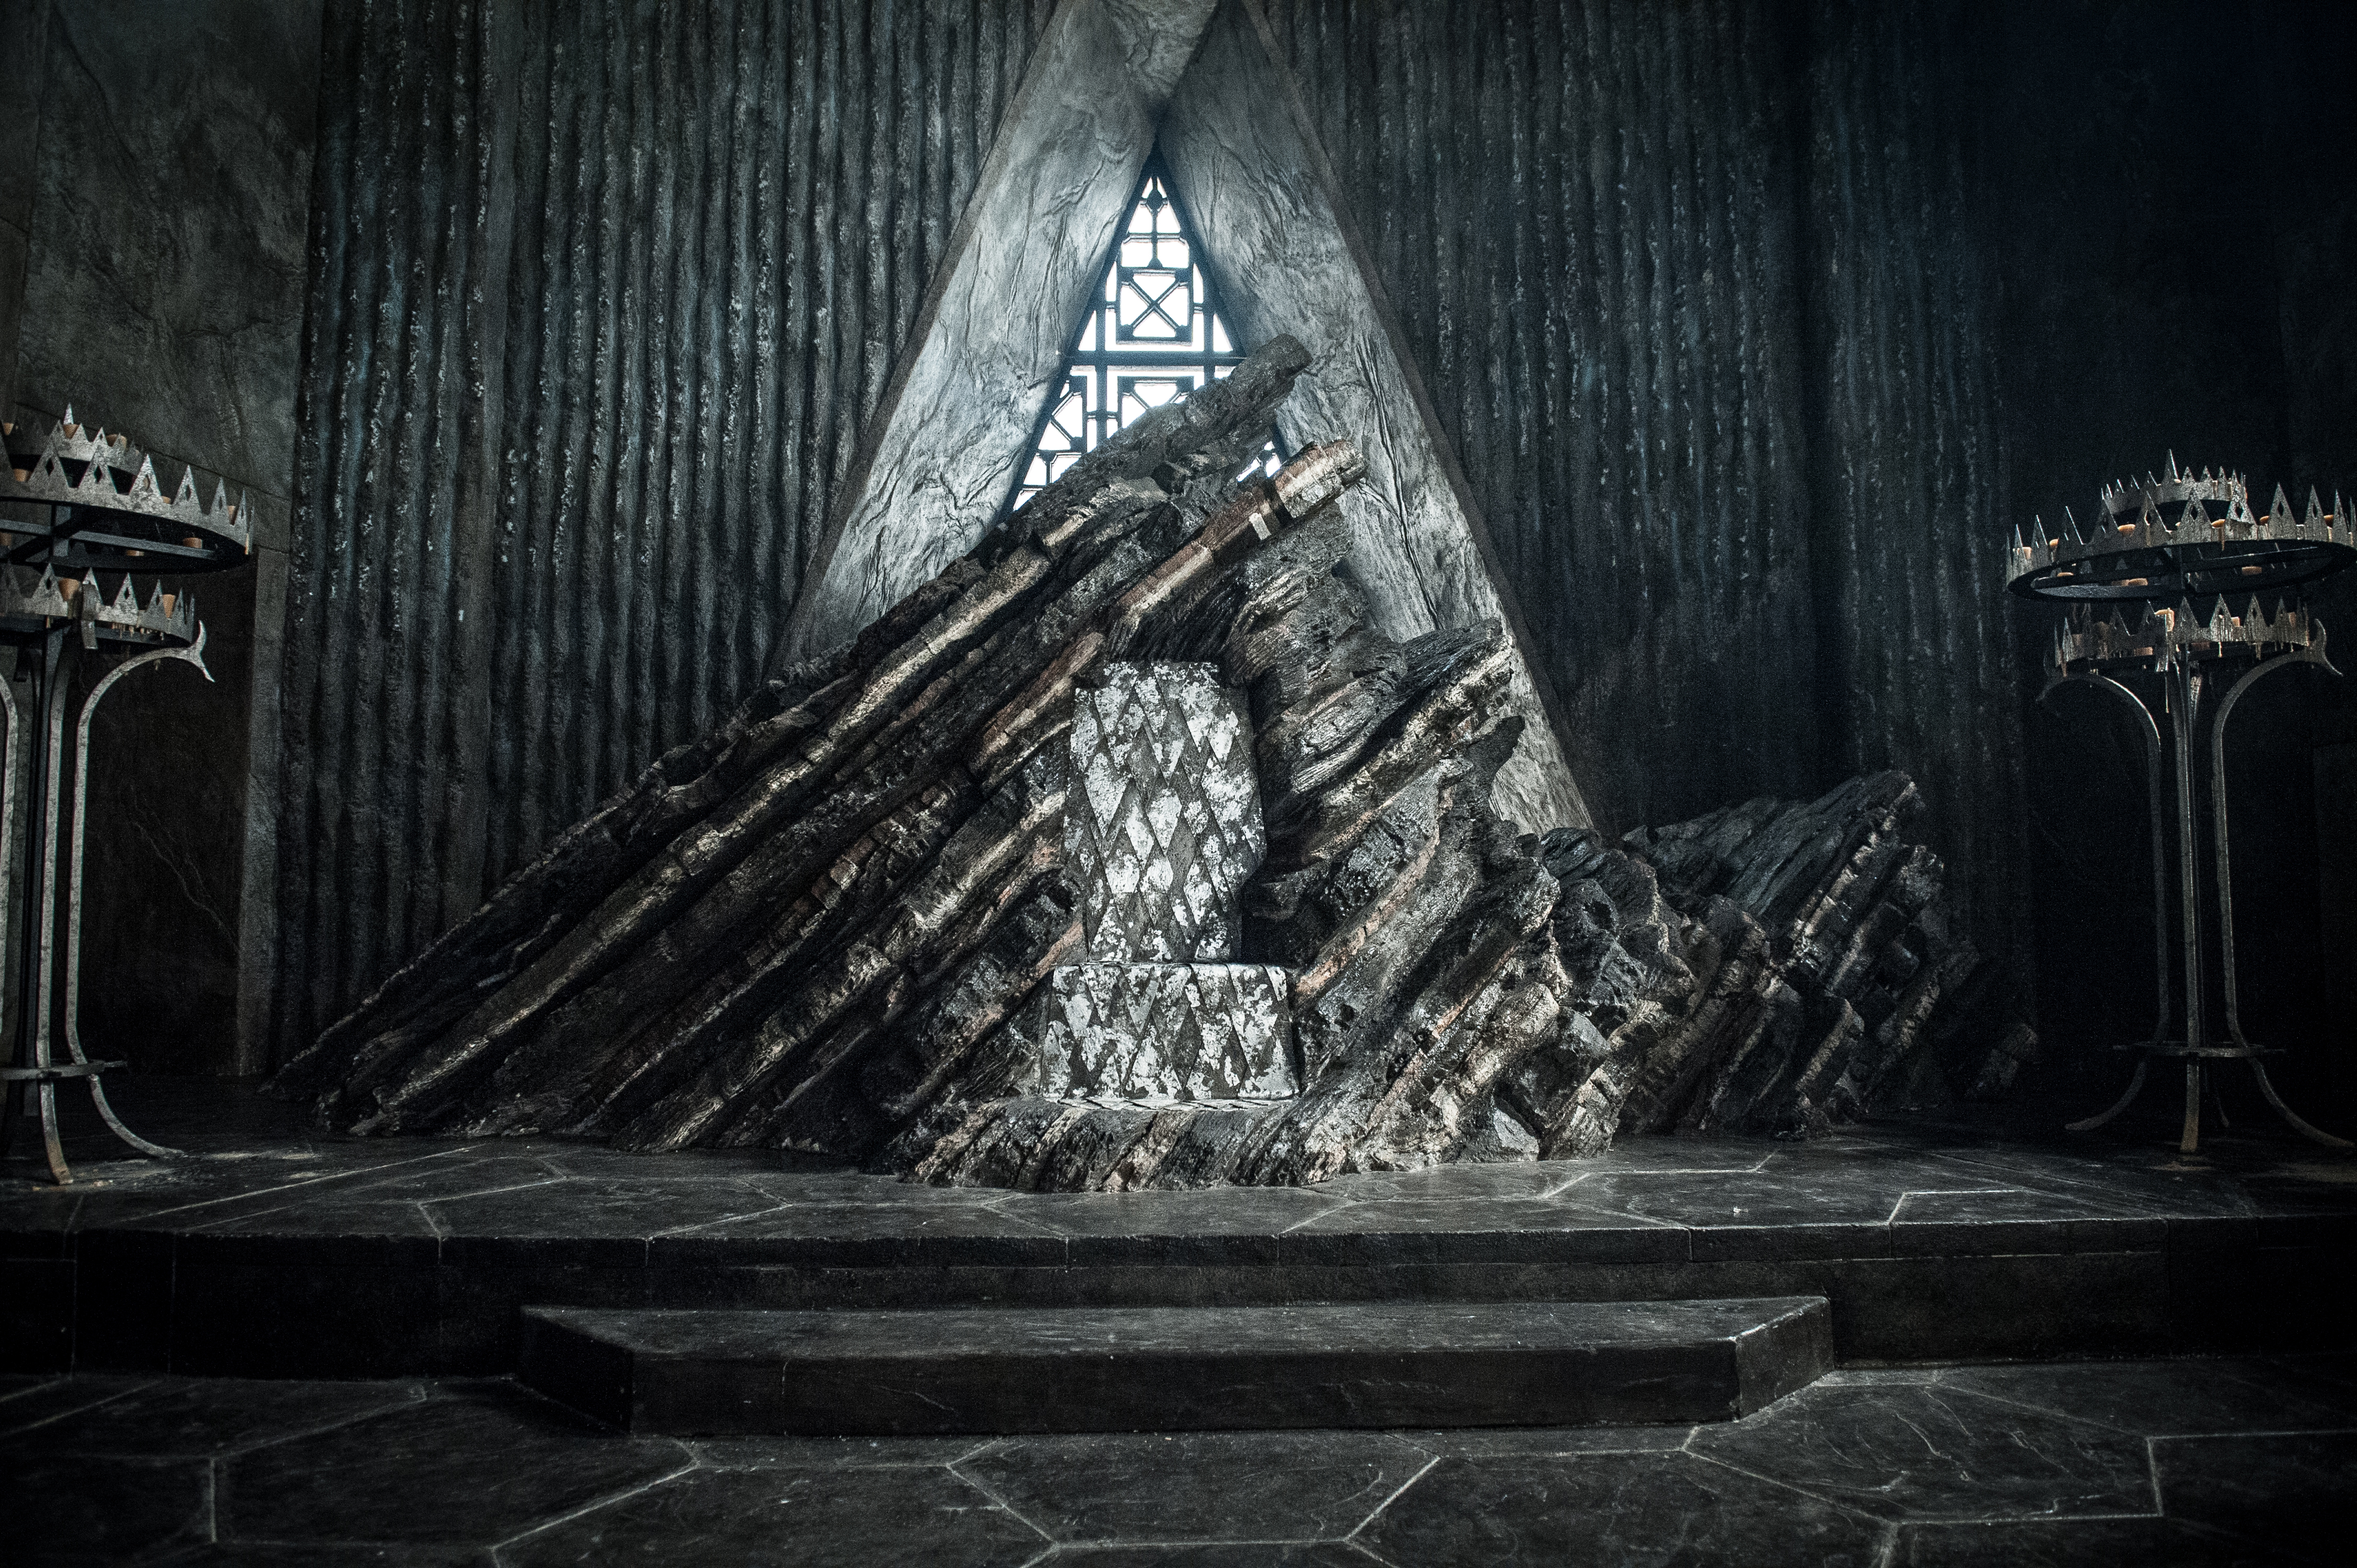 'Game of Thrones' set designer reveals the show's architectural inspirations